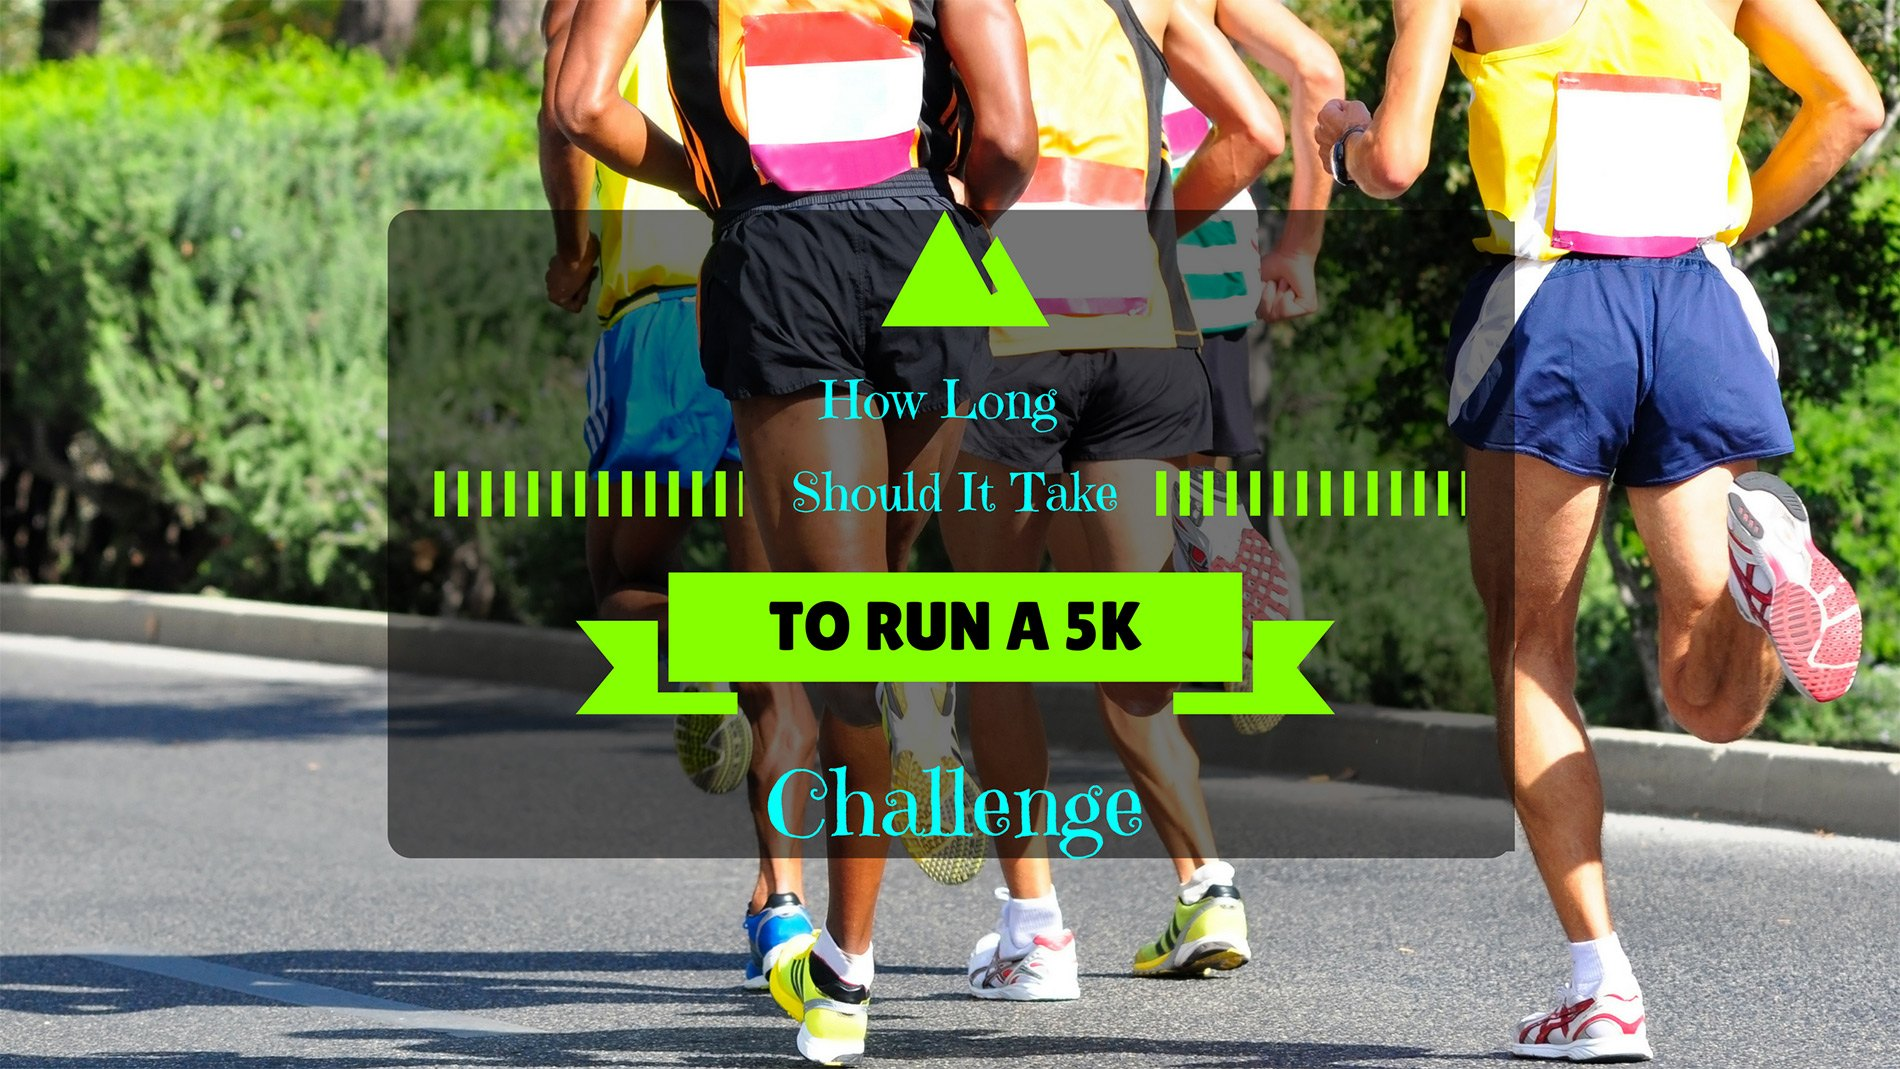 How Long Should It Take To Run A 5K Challenge? - GoAheadRunner